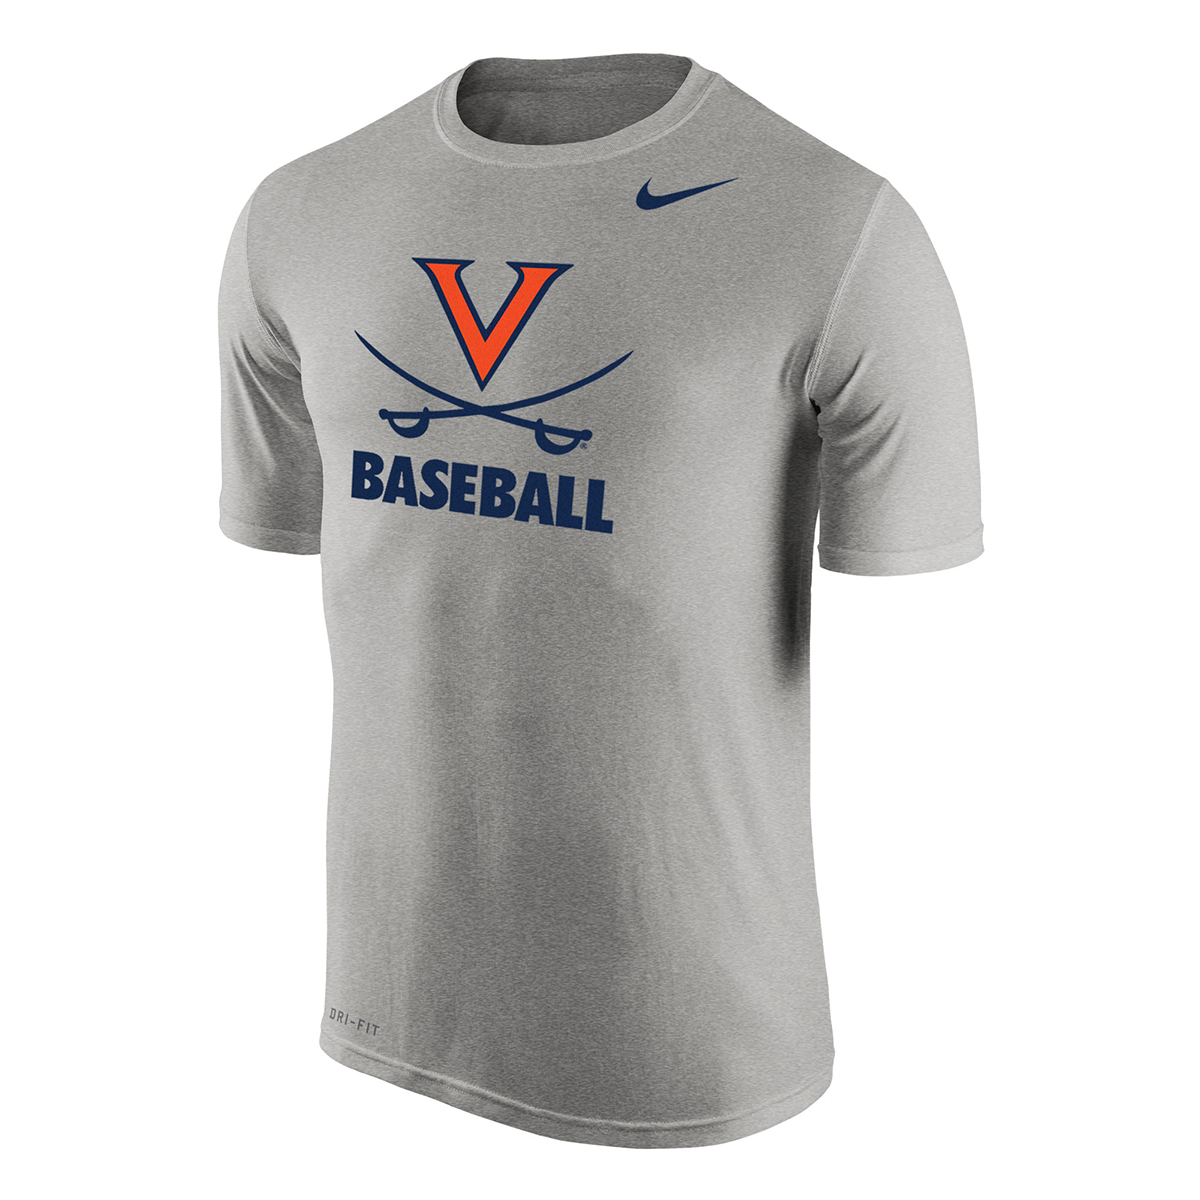 University of Virginia Baseball NIKE Dri-Fit T-shirt